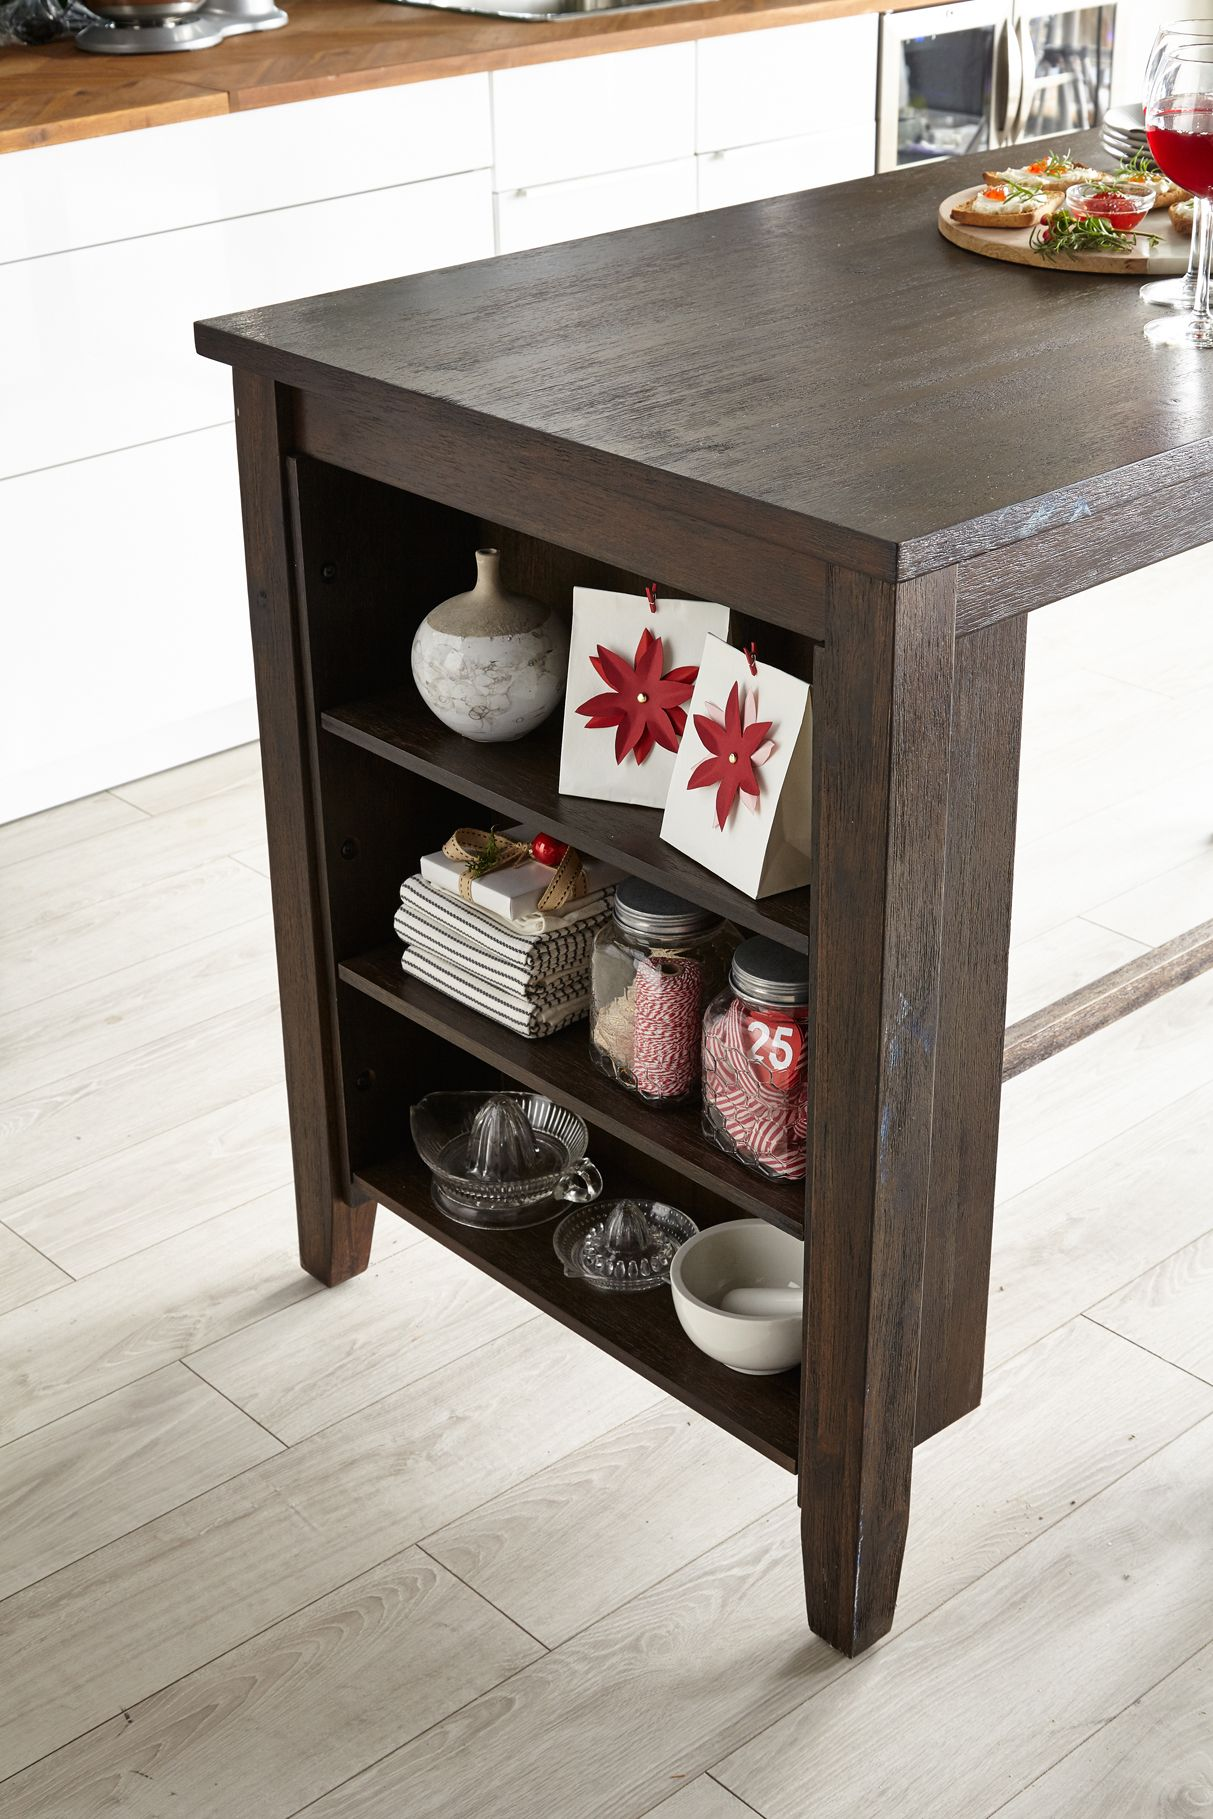 Astoria Counter Height Dining Table With Open Shelving Counter Height Dining Table Open Shelving Dining Table